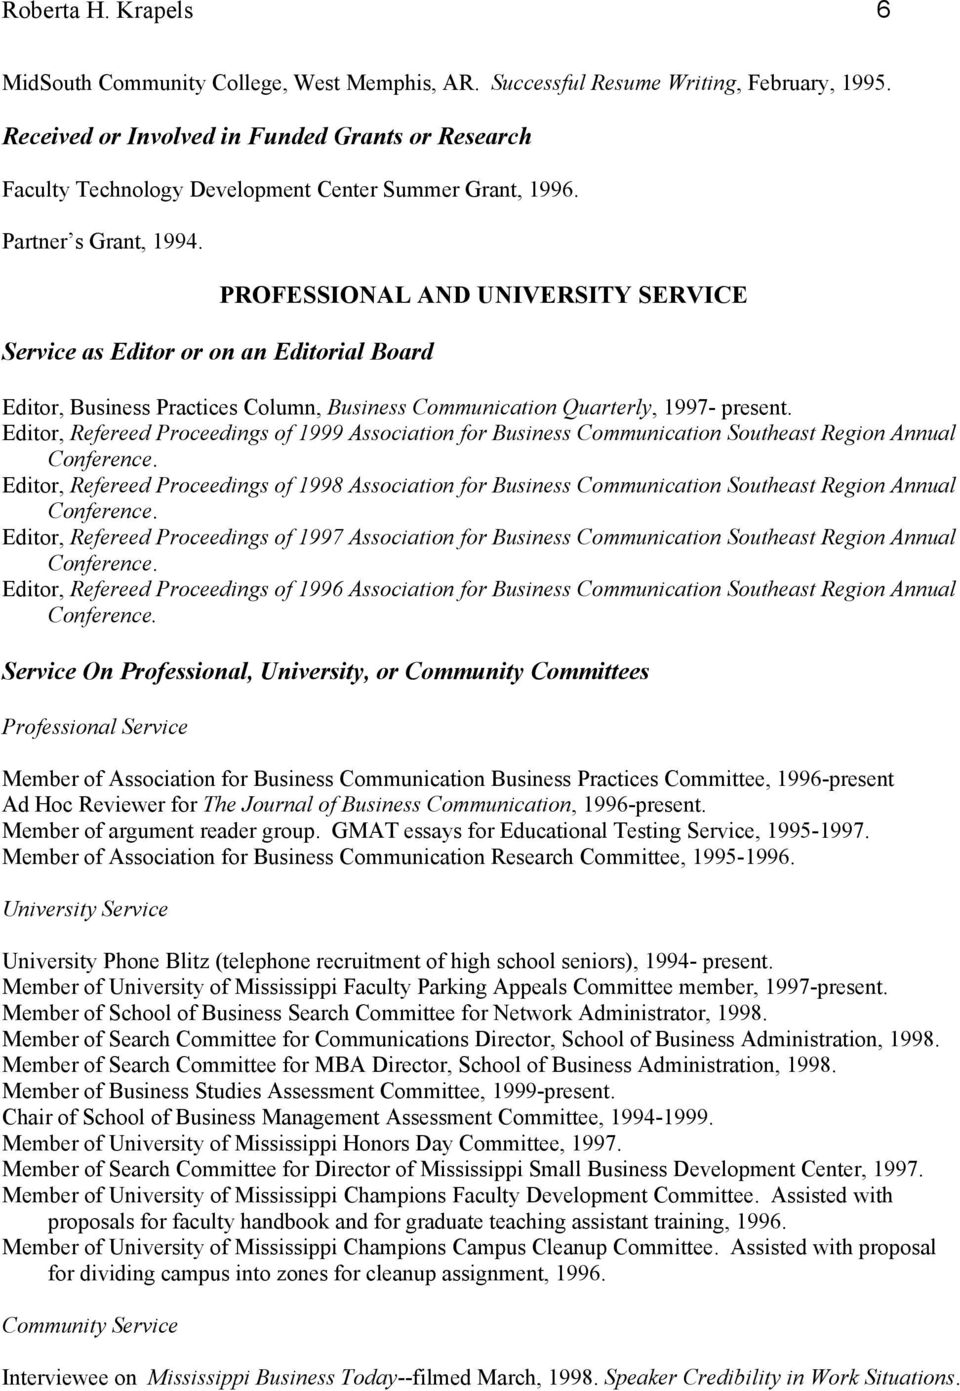 Service as Editor or on an Editorial Board PROFESSIONAL AND UNIVERSITY SERVICE Editor, Business Practices Column, Business Communication Quarterly, 1997- present.